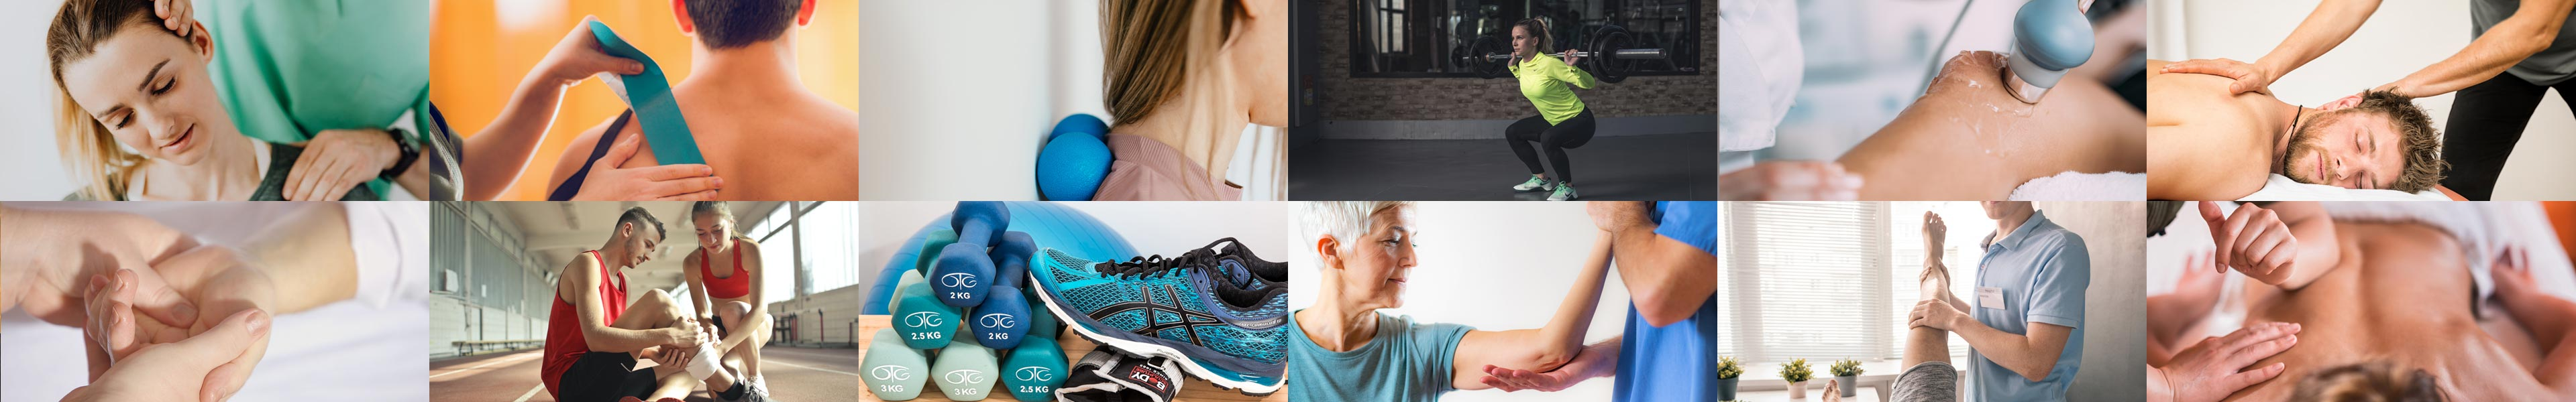 Collage of Physiotherapy Services and Lifestyle Providing you the best Physio Treatments in Singapore